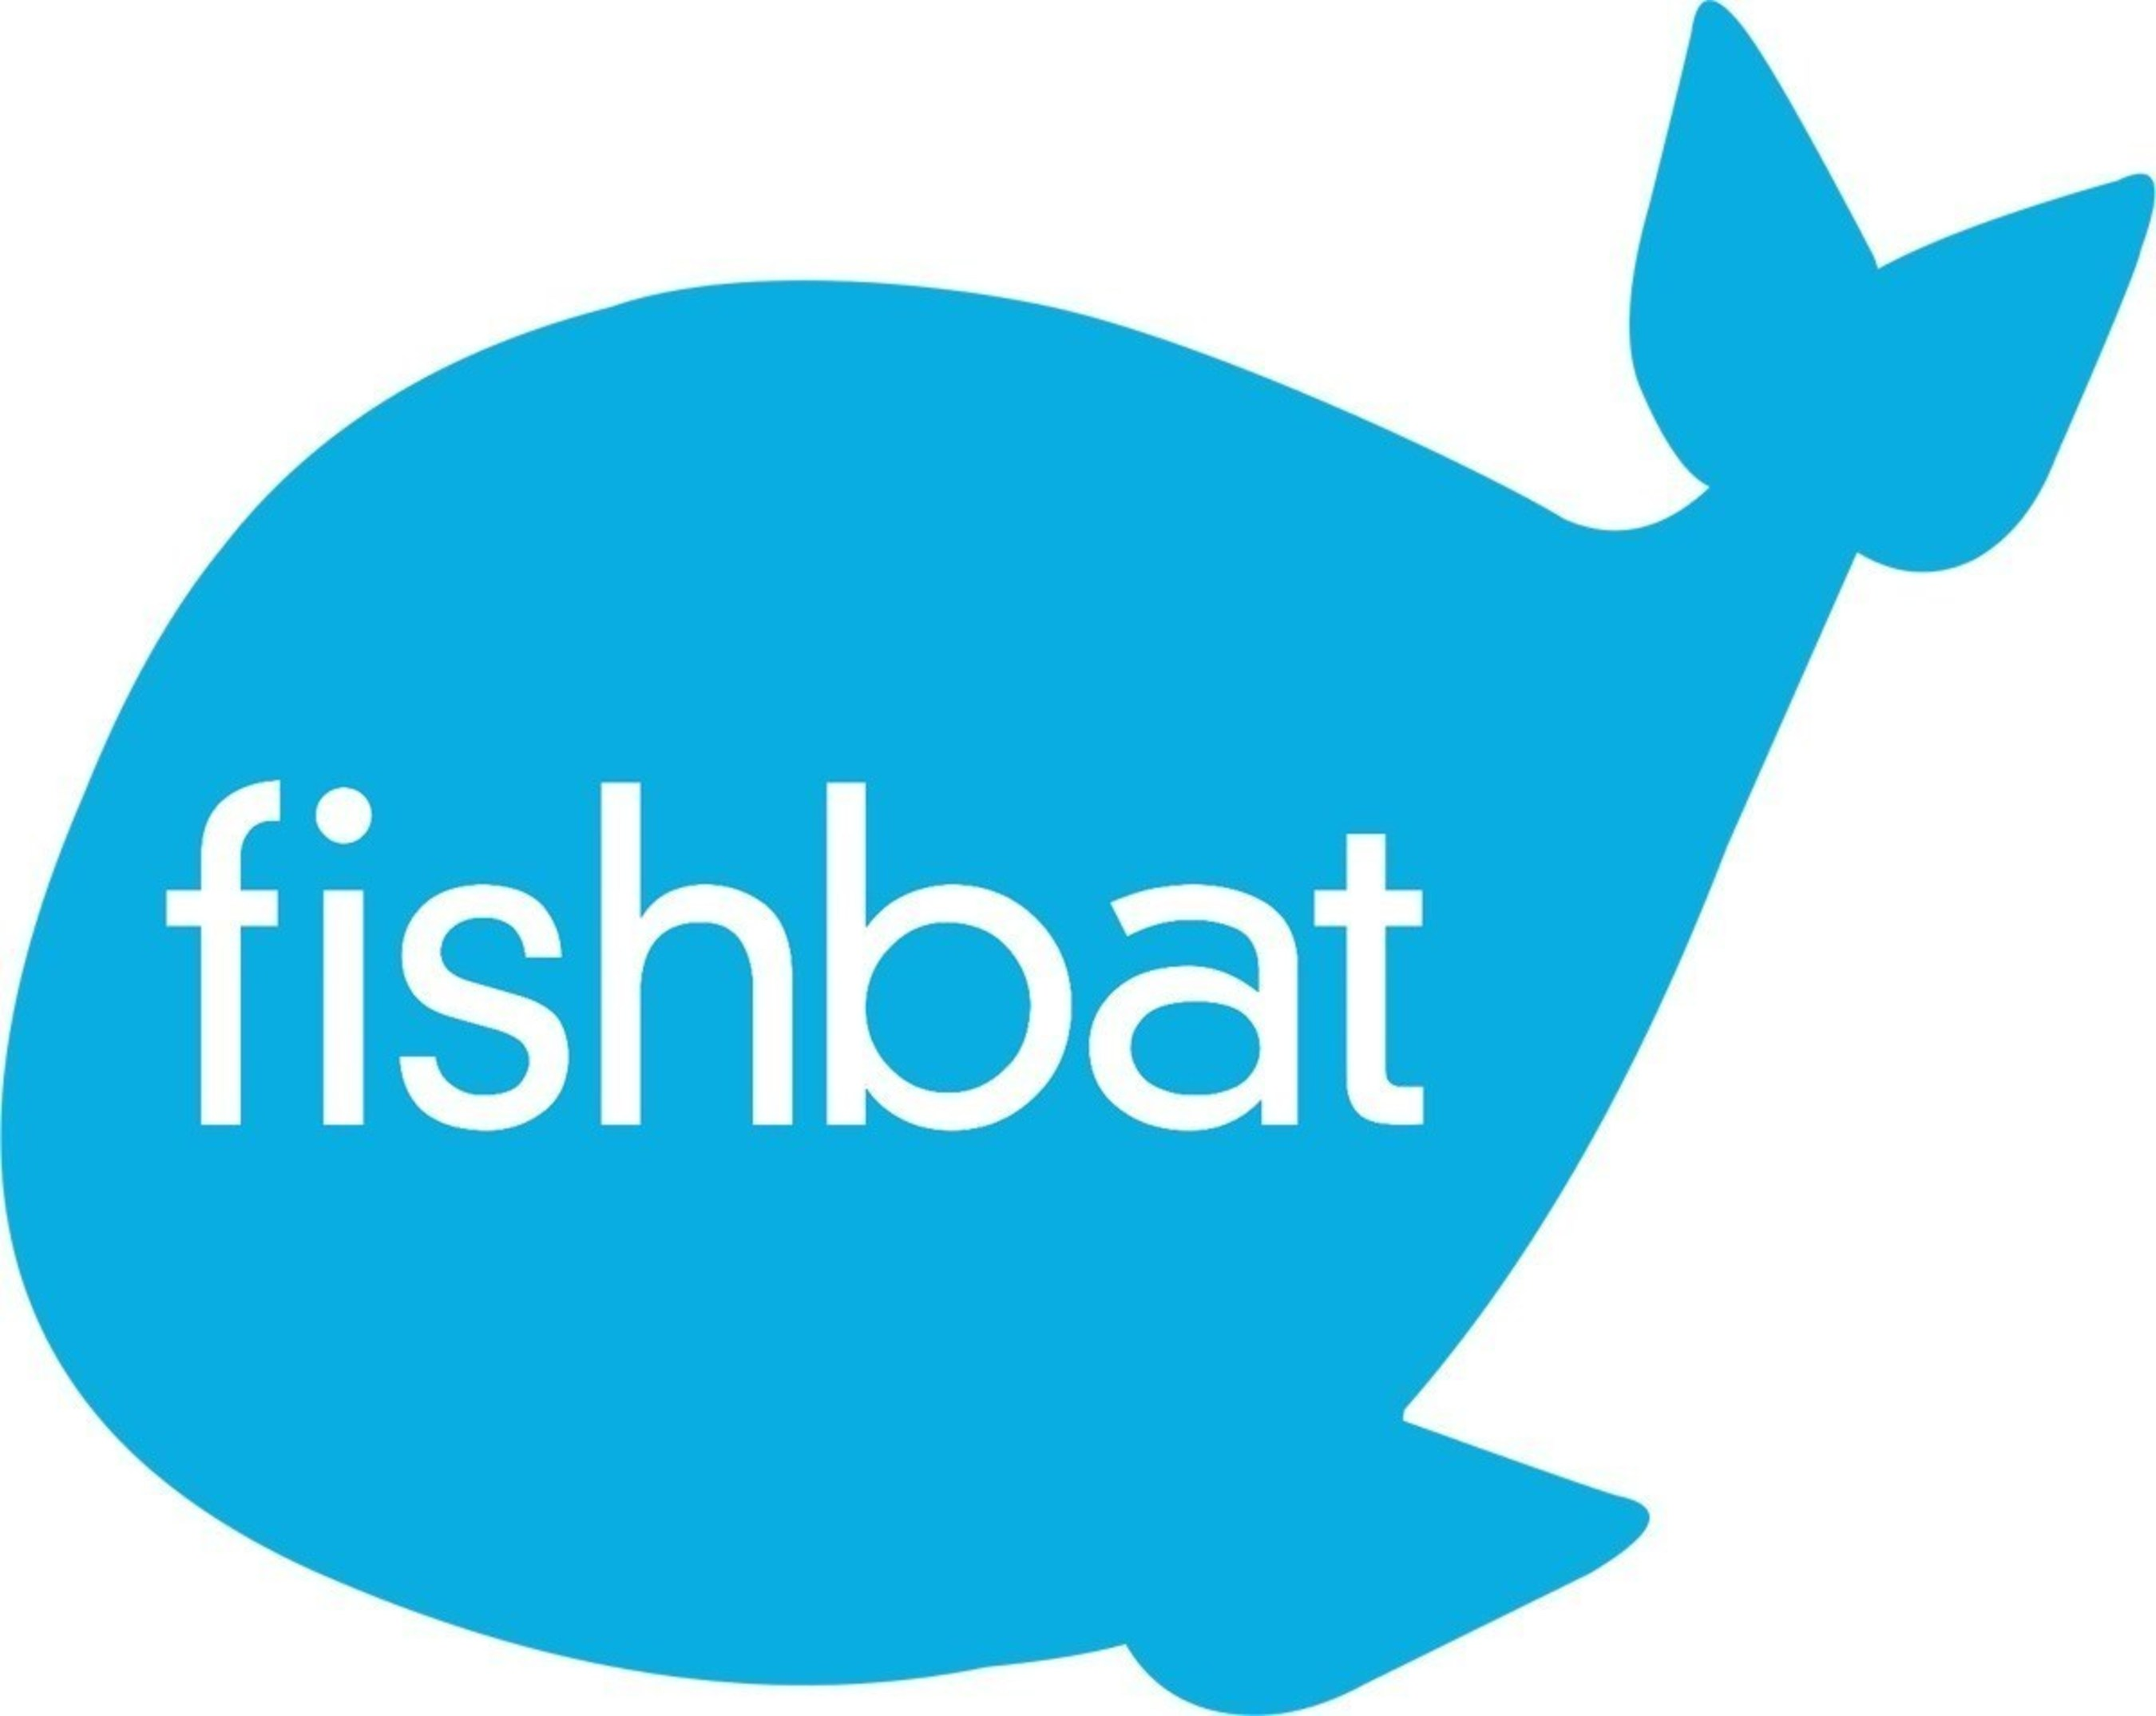 fishbat CEO Clay Darrohn Discusses 4 Ways to Leverage Location-Based Social Media